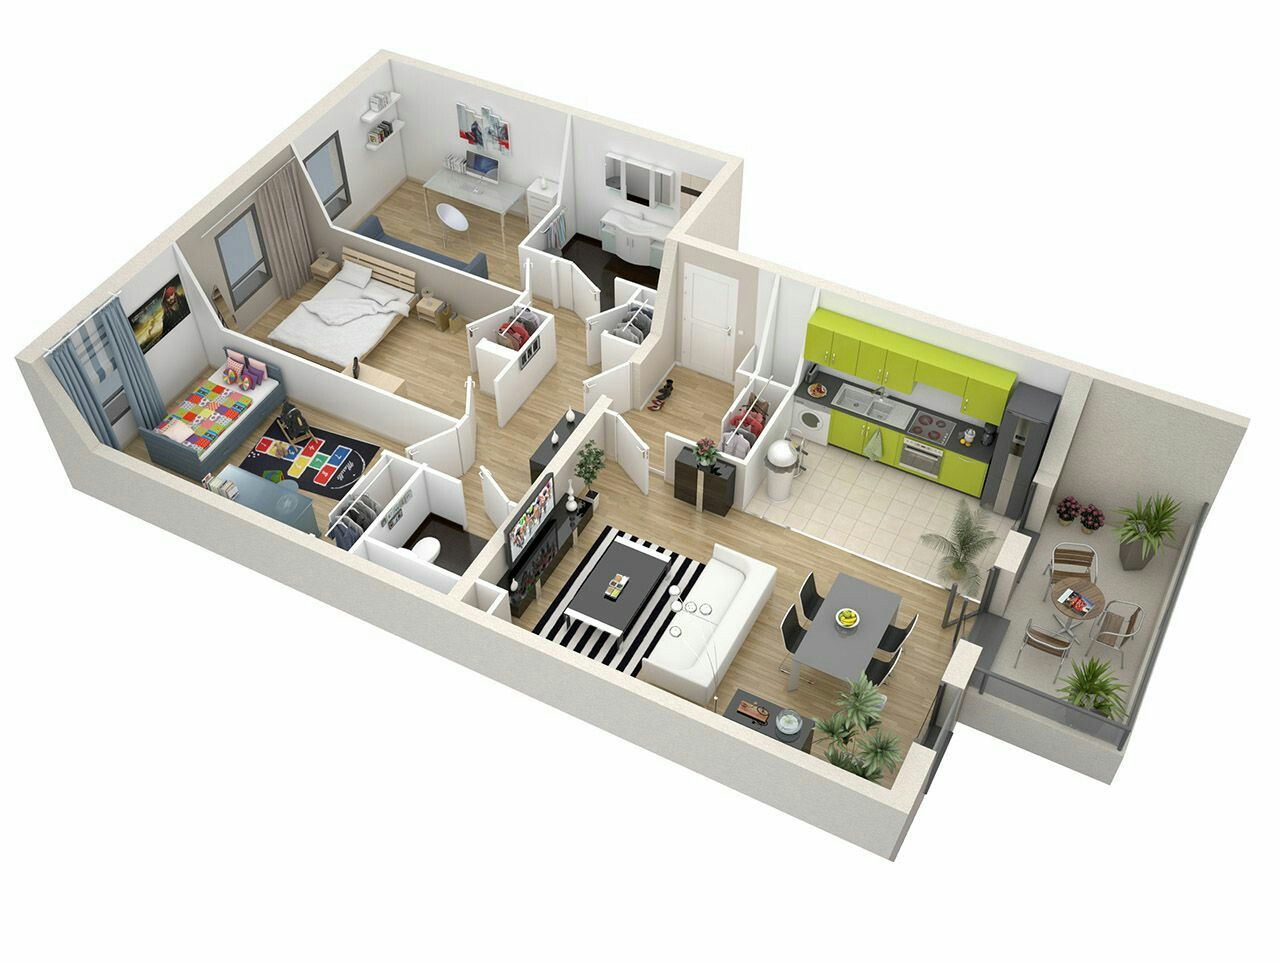 Pin by Chacha on Plan 3D   House plans, House, Sims 4 houses